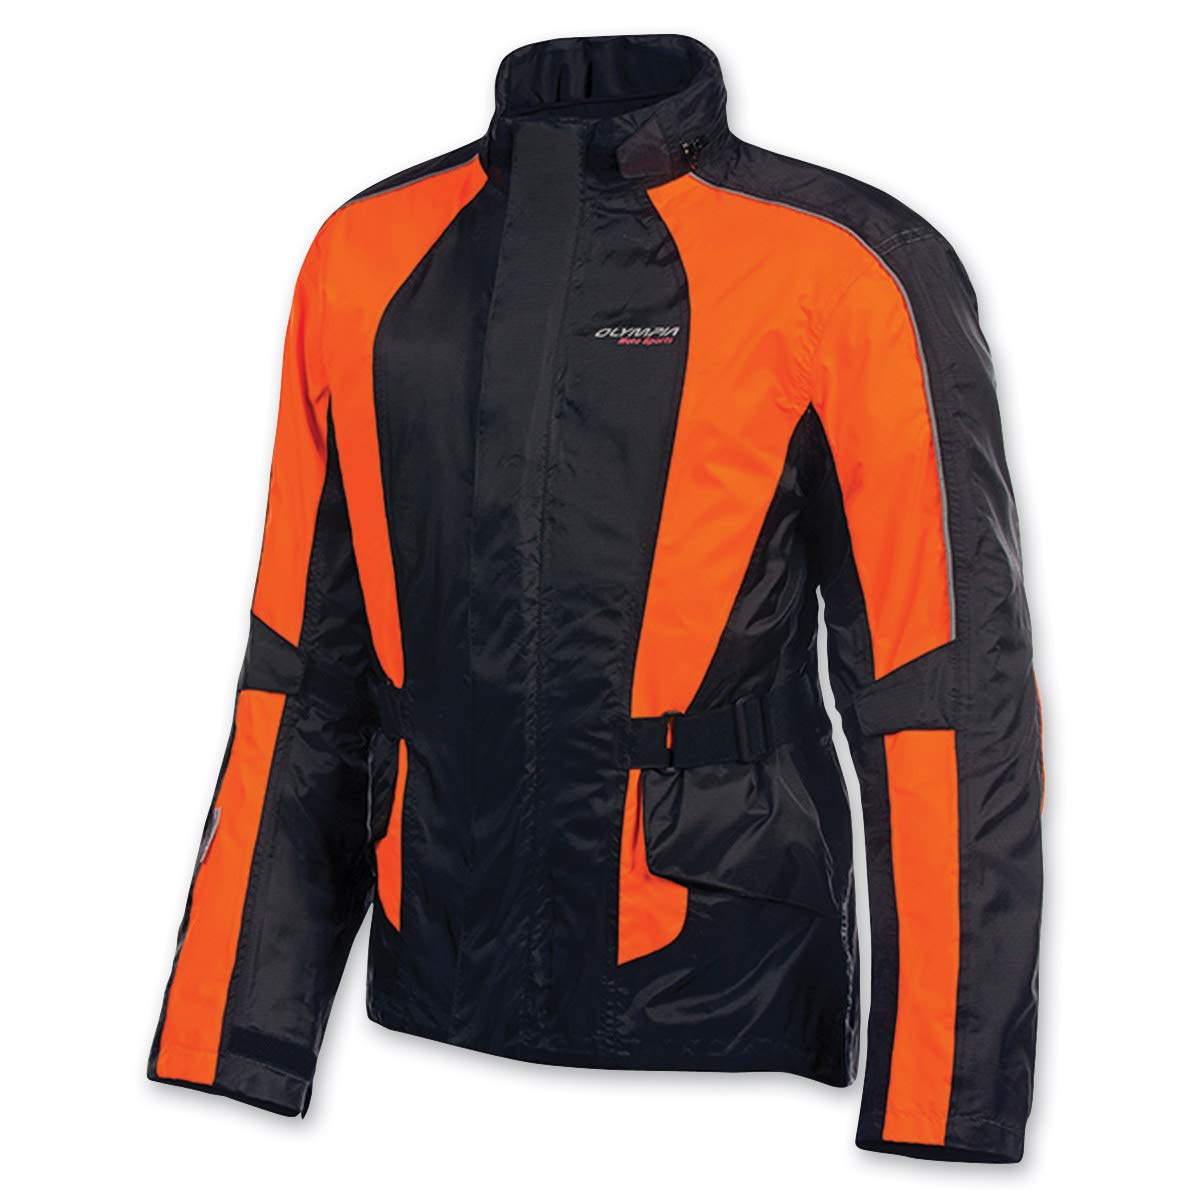 Olympia Moto Sports Unisex Horizon Neon Orange Rain Jacket, XL